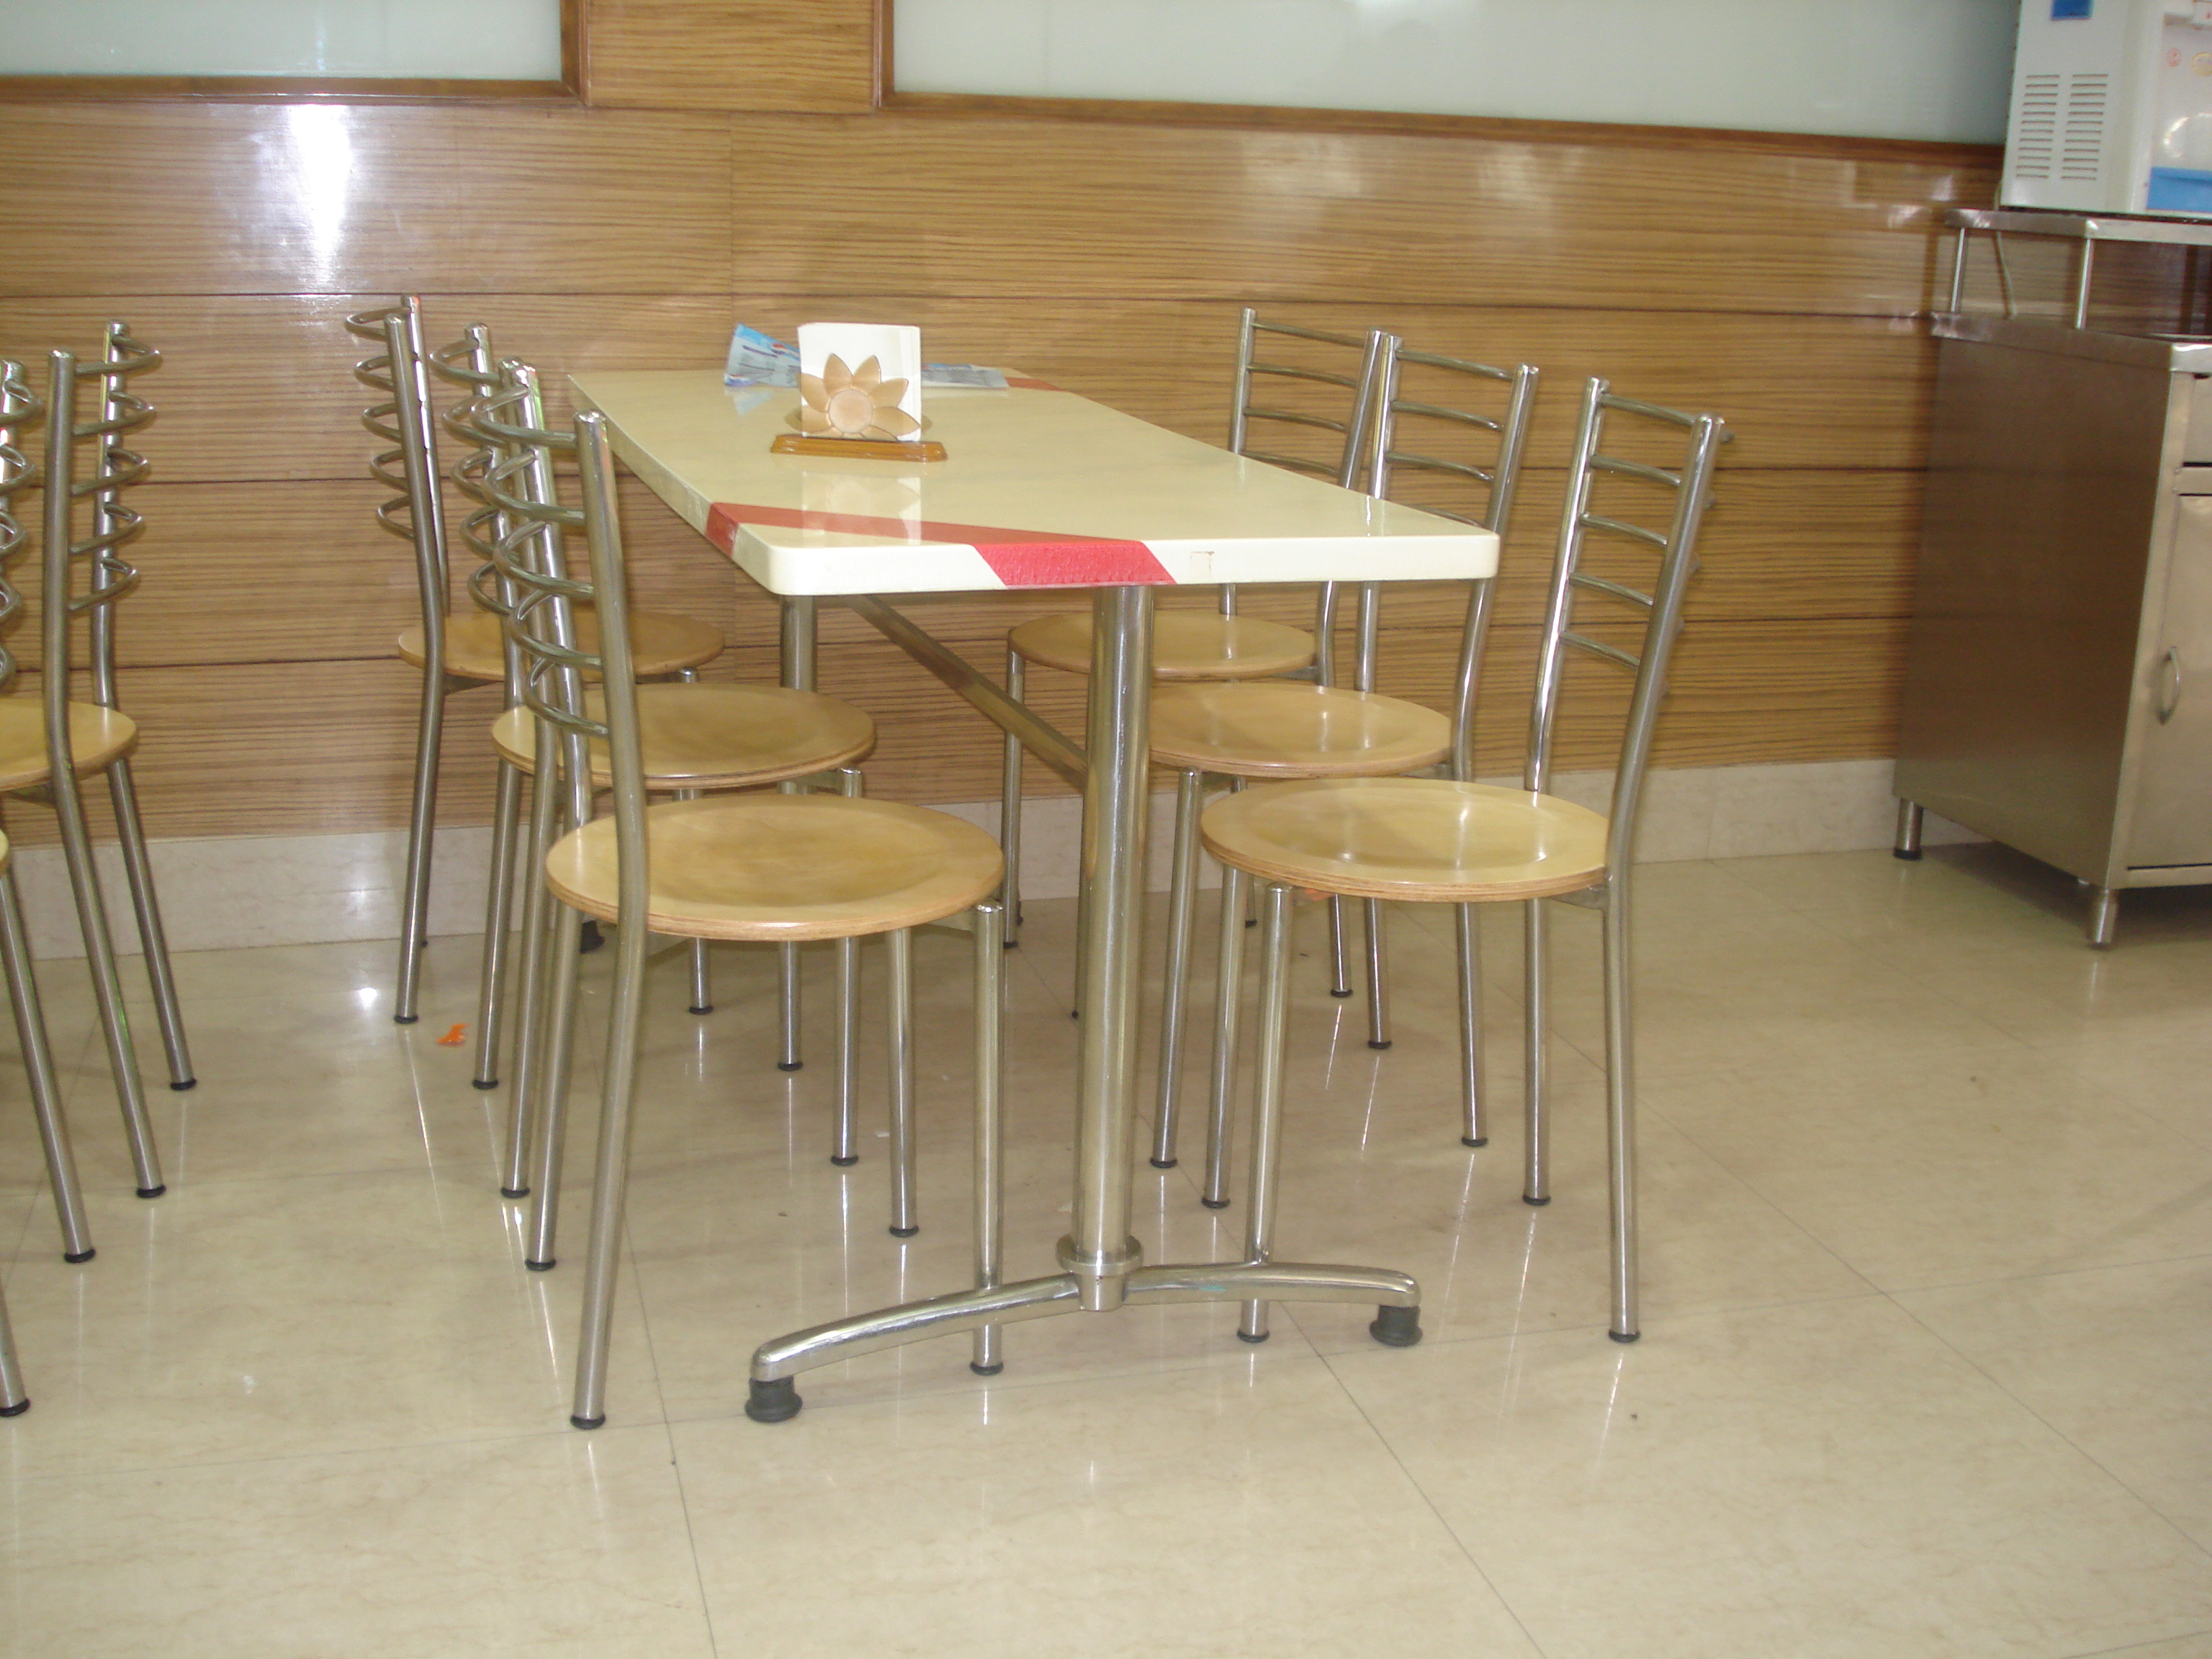 Cafe Restaurant Furniture In Lucknow Cafe Restaurant Furniture